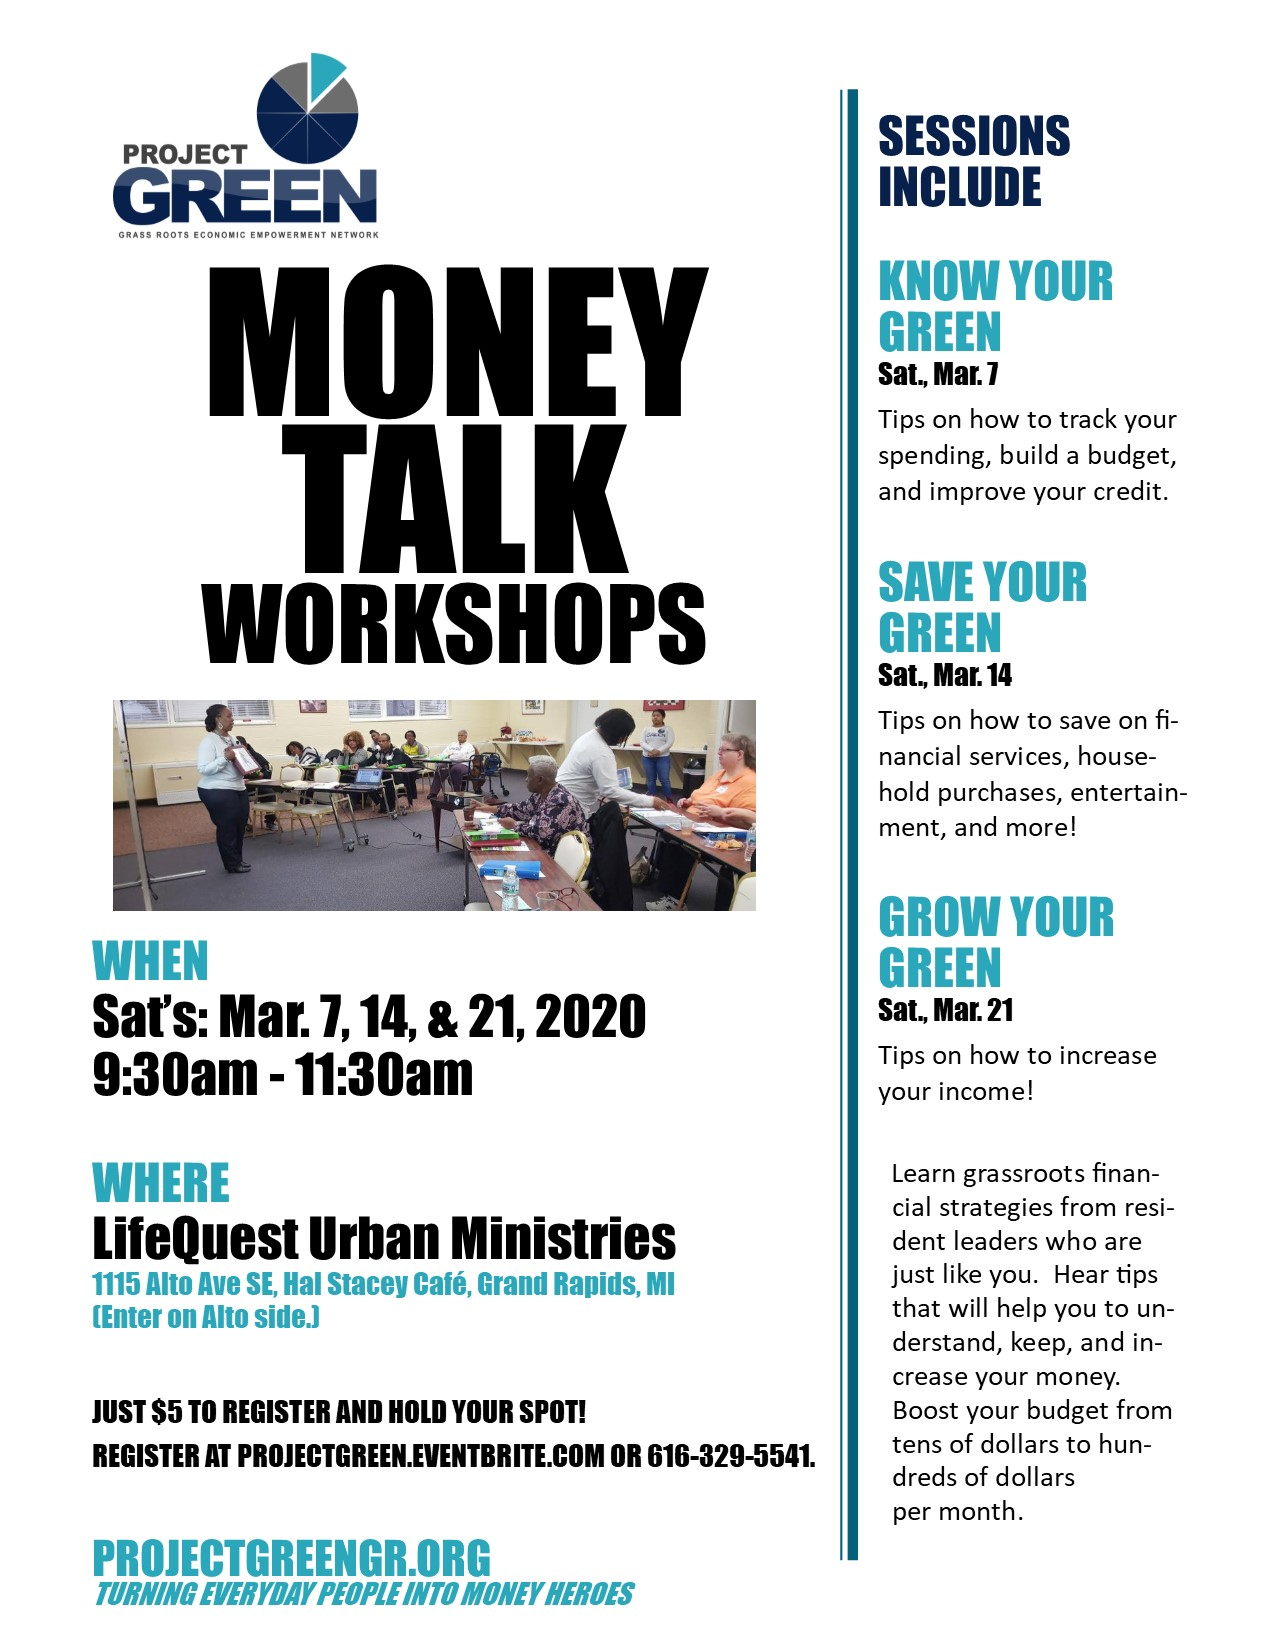 Project GREEN Money Talk Workshop Flyer for March 7, 14, & 21, 2020